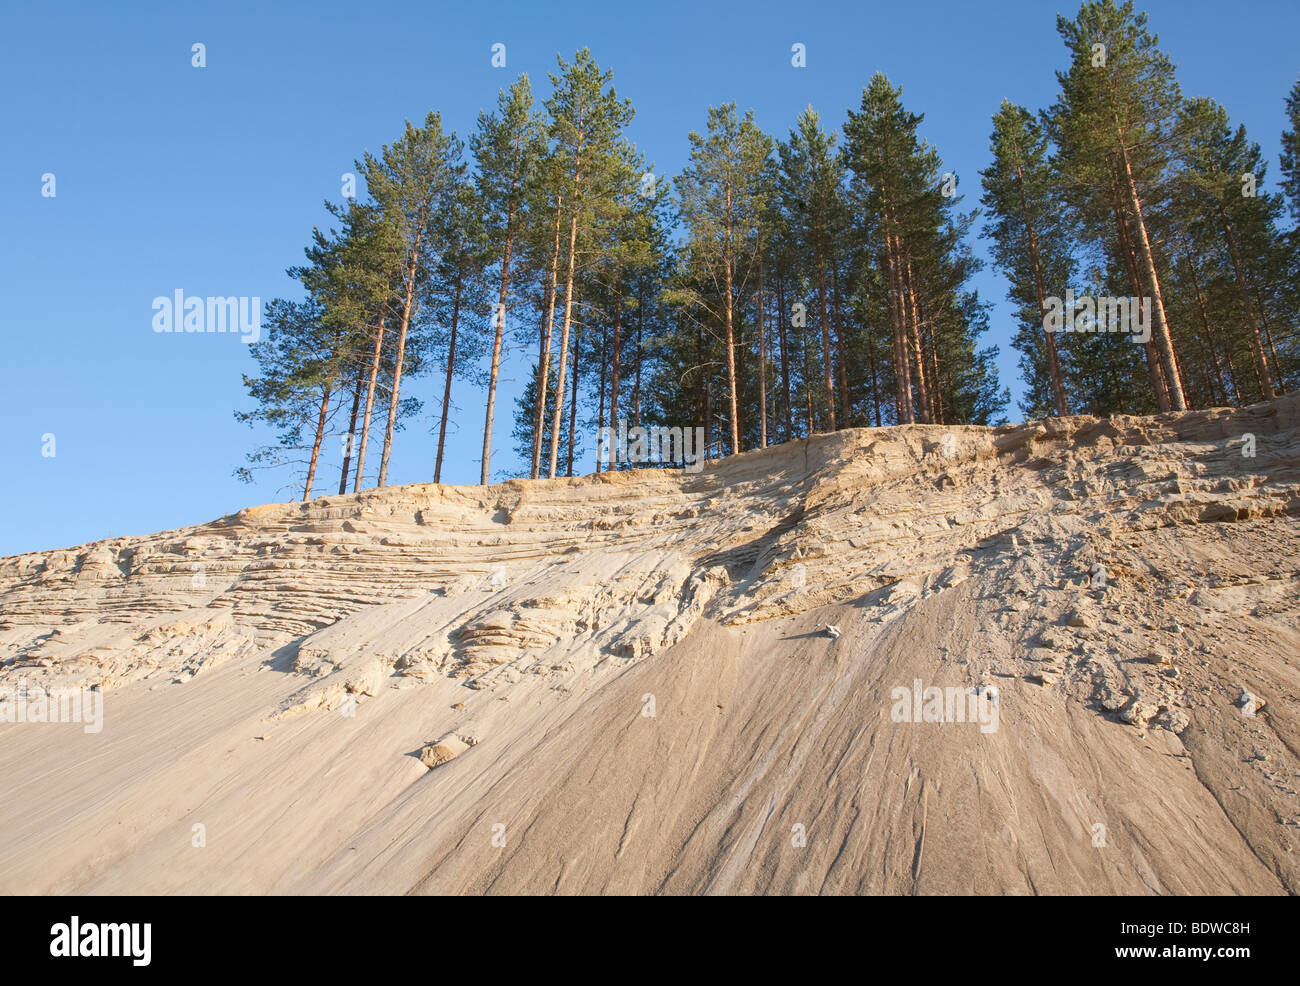 Pine ( pinus sylvestris ) trees growing on top of a sandy ridge , Finland - Stock Image